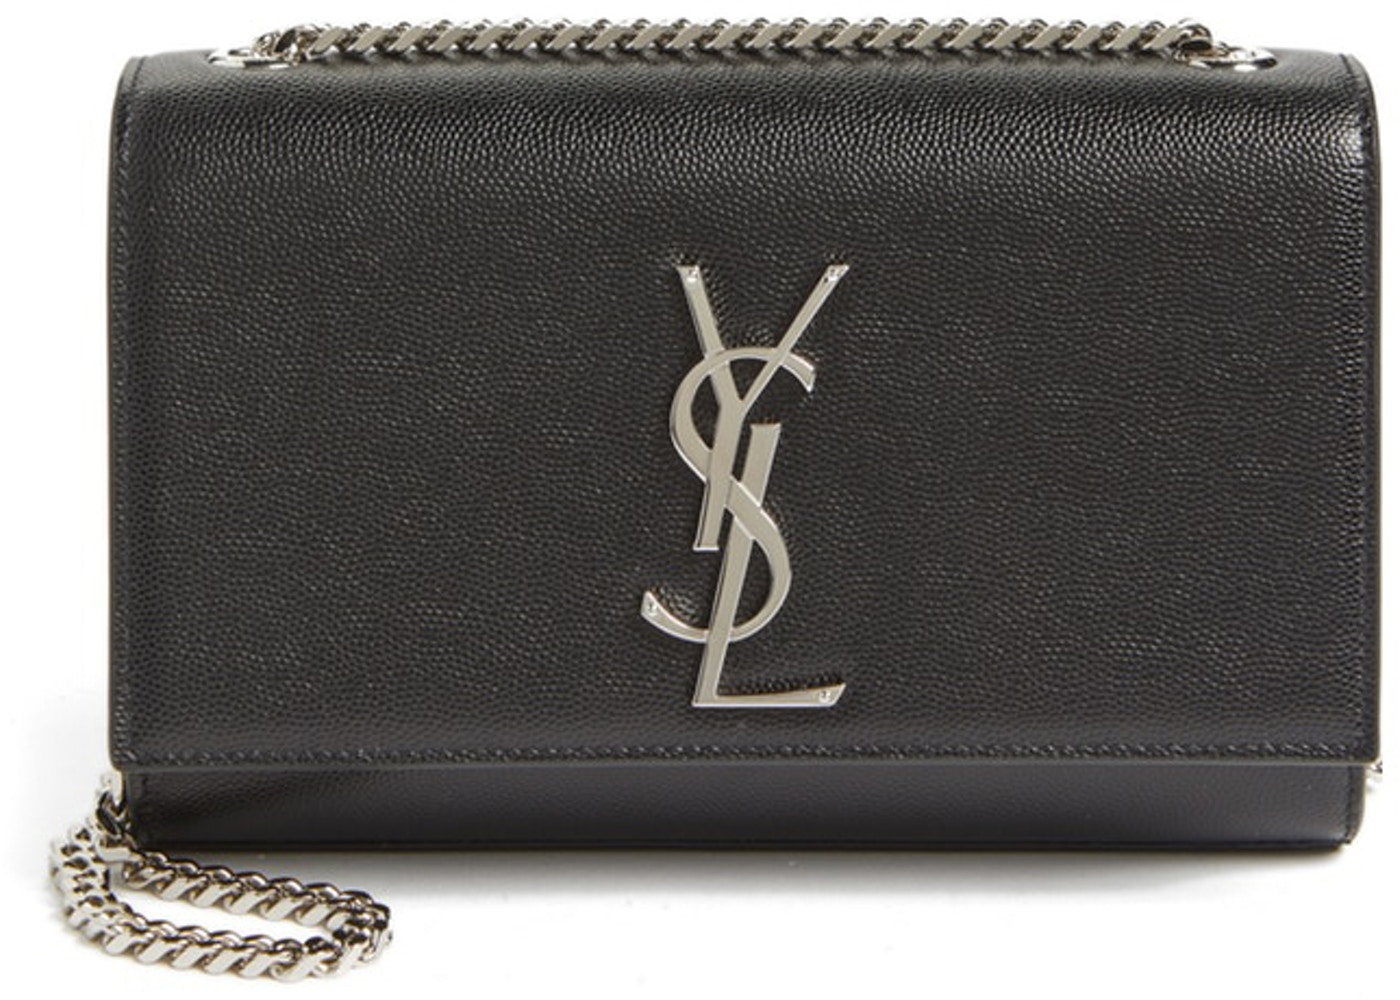 50d40ea1d1b0 Saint Laurent - Most Popular